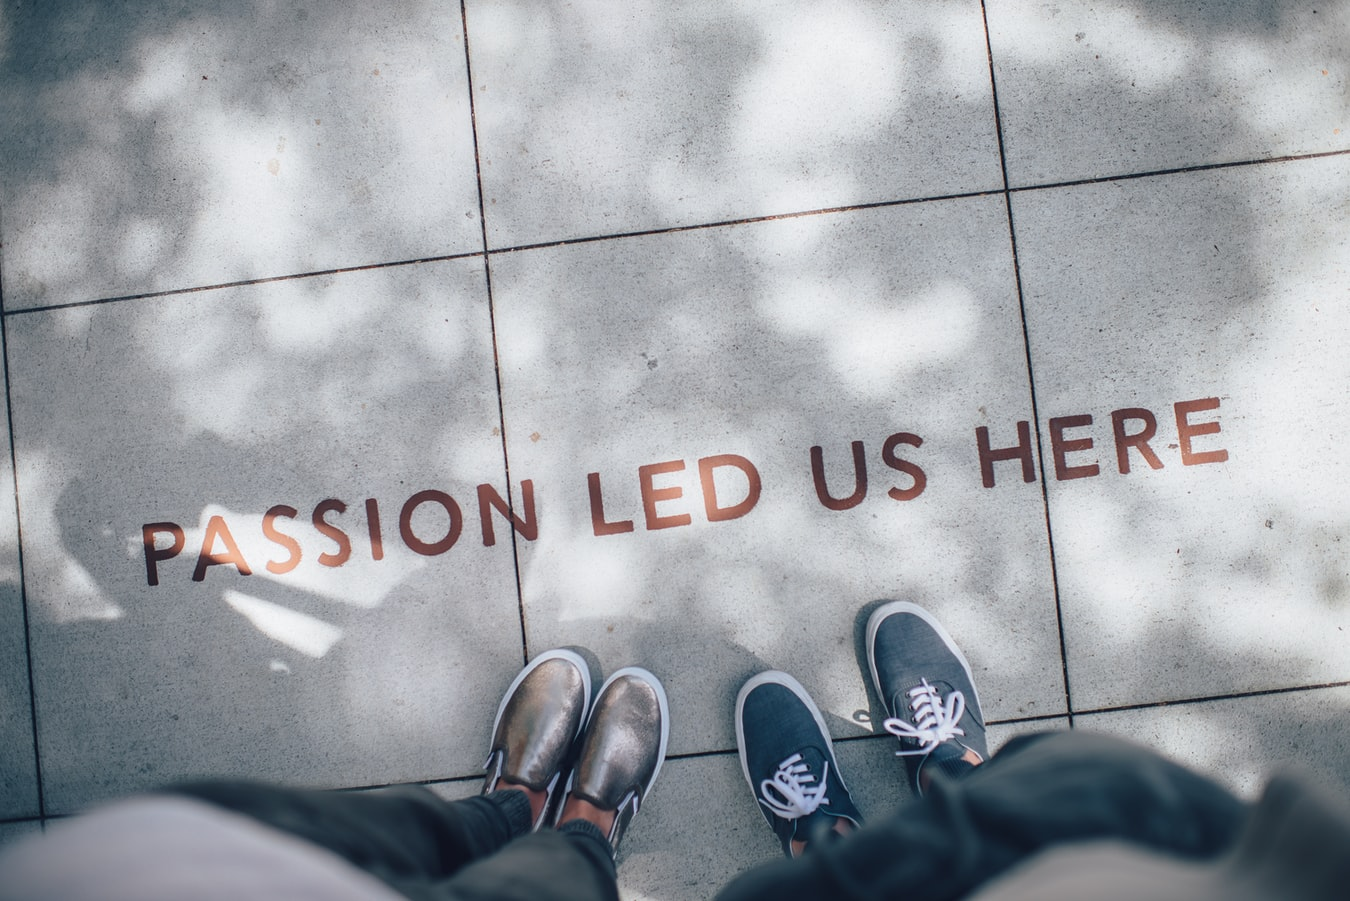 Two person standing on gray tile paving. @goian, unsplash.com